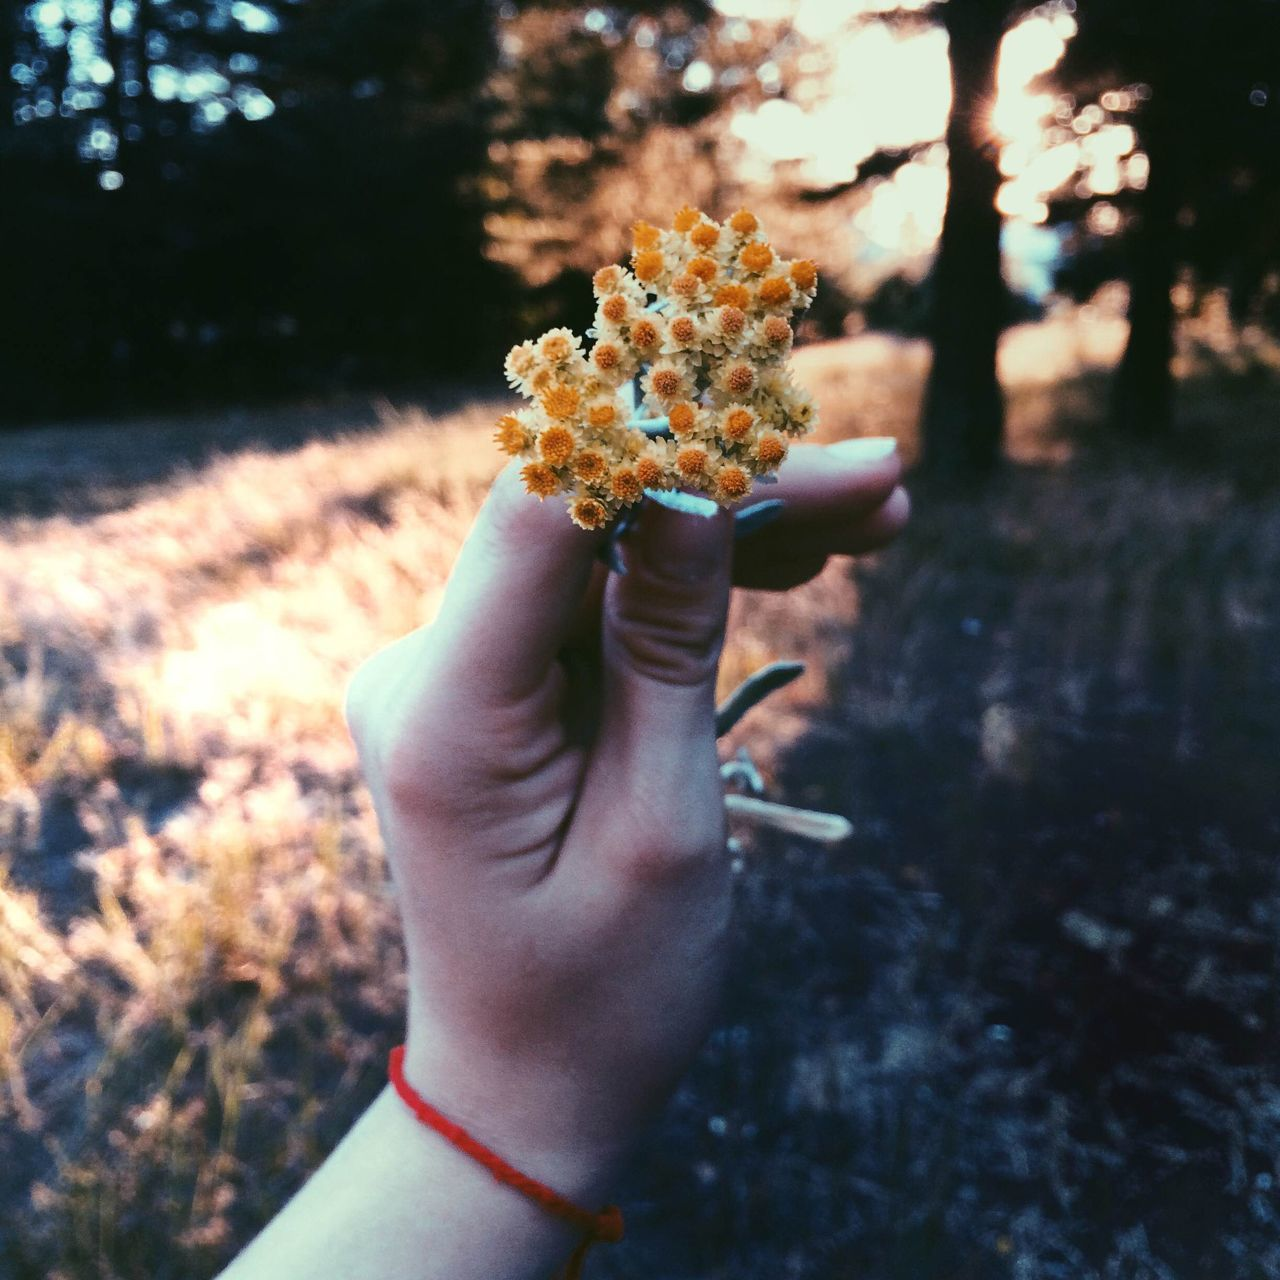 human hand, flower, holding, one person, outdoors, human body part, real people, nature, tree, close-up, beauty in nature, grass, day, people